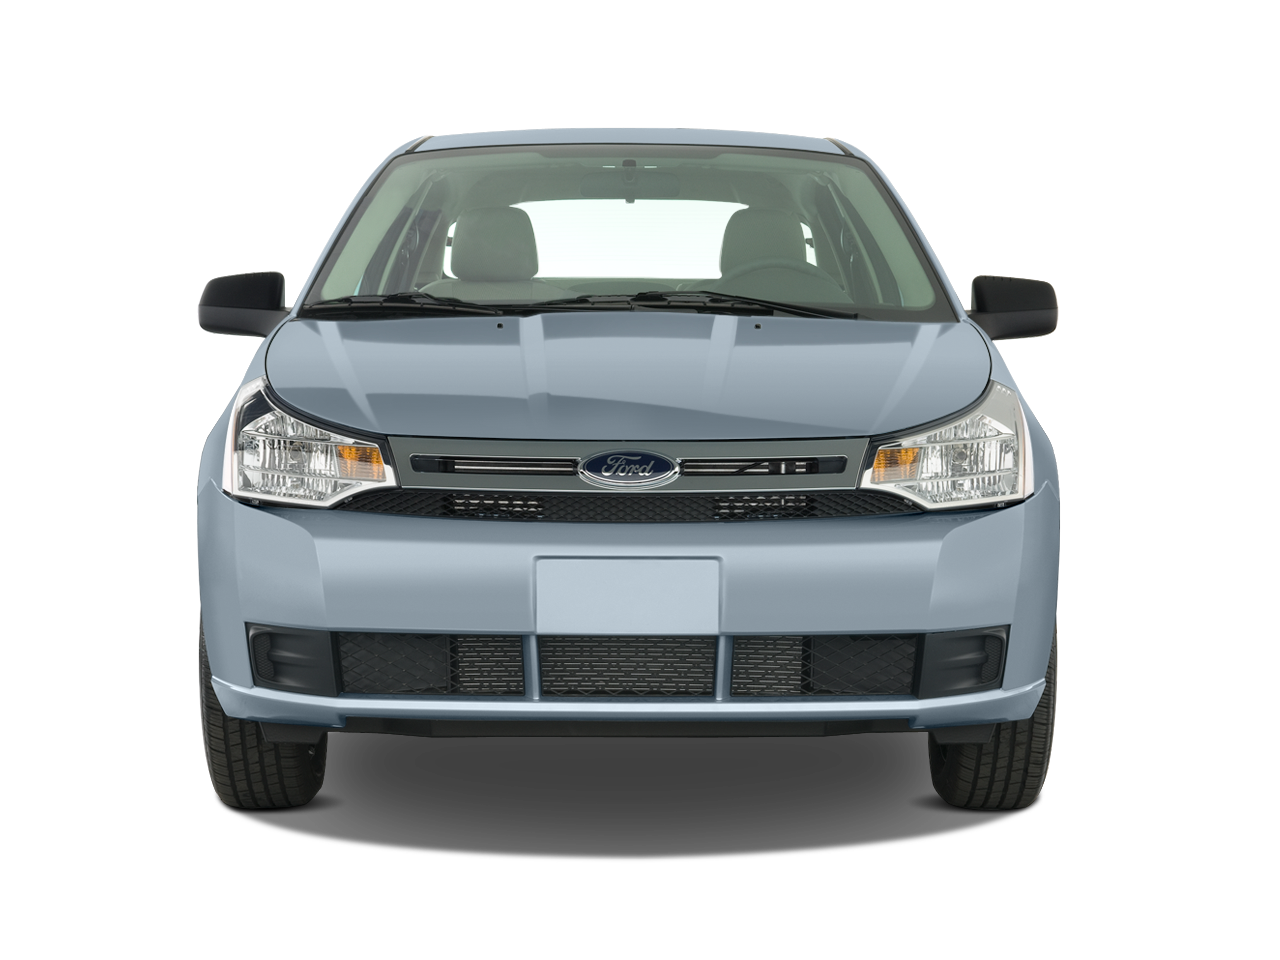 2009 ford focus ses ford midsize coupe review. Black Bedroom Furniture Sets. Home Design Ideas